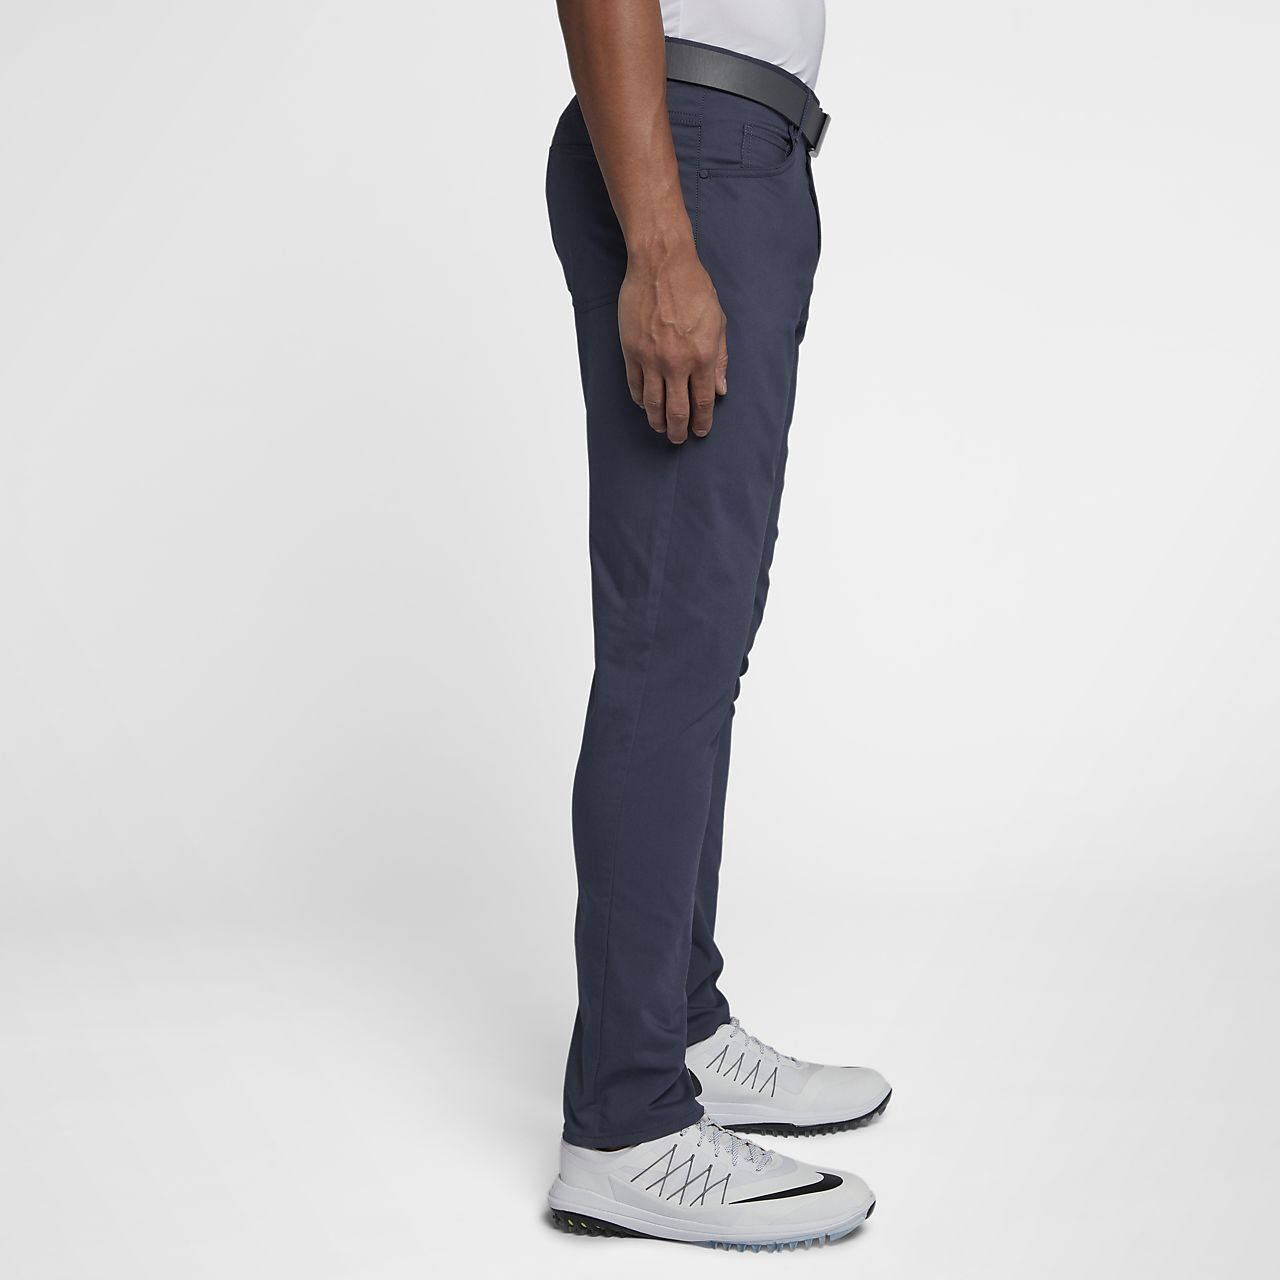 04c4da7fd7142 Nike Flex 5 Pocket Men's Slim Fit Golf Trousers. Nike.com CZ